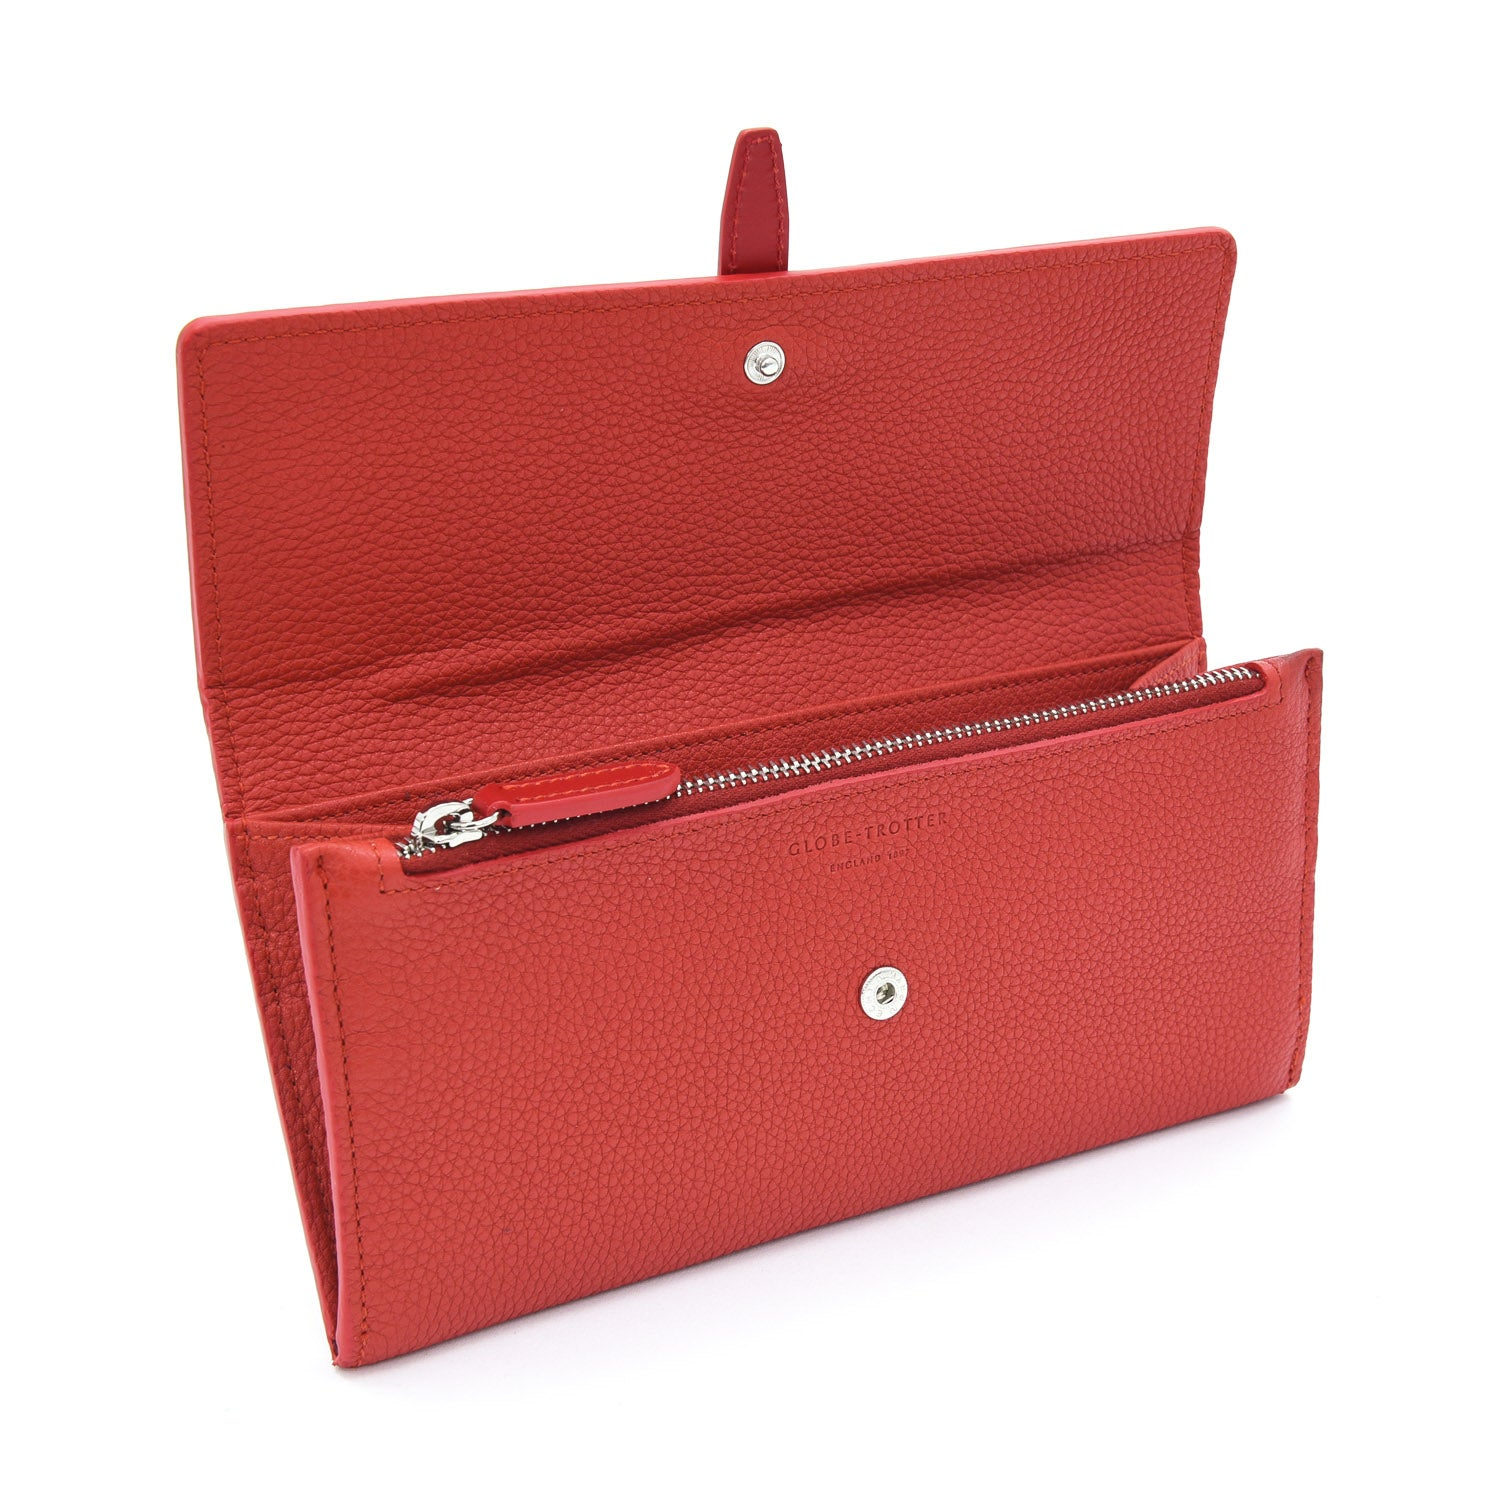 Centenary Leather · Flap Over Purse - Red